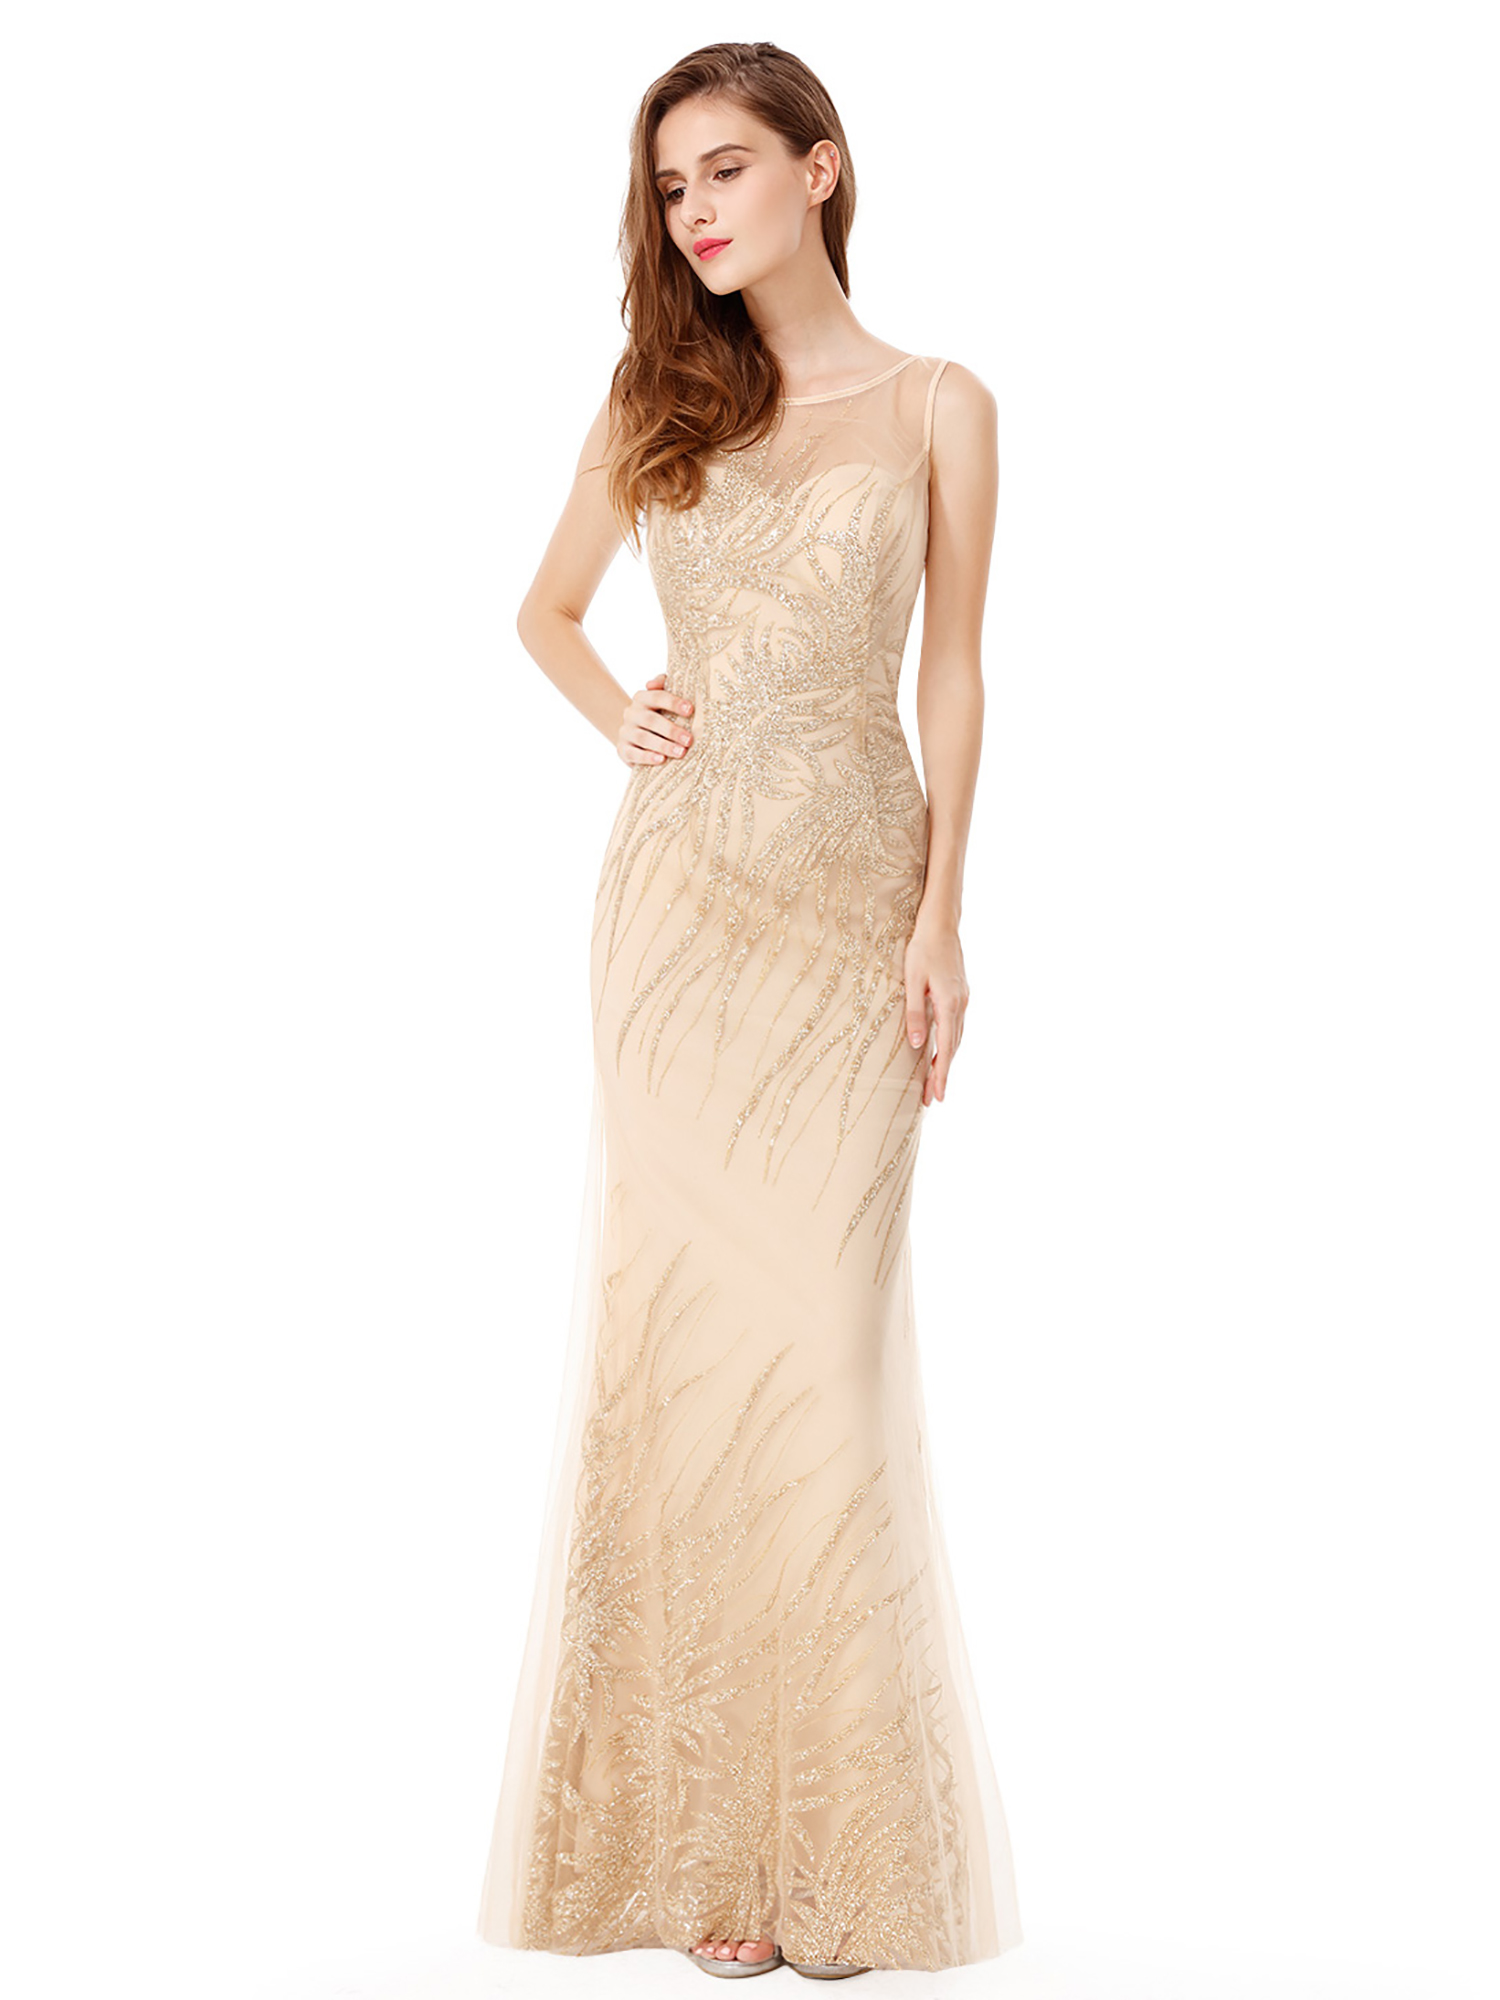 16c4fb576bd Details about UK Ever-Pretty Gold Sequin Sparkly Long Evening Dress Elegant  Formal Gown 08929